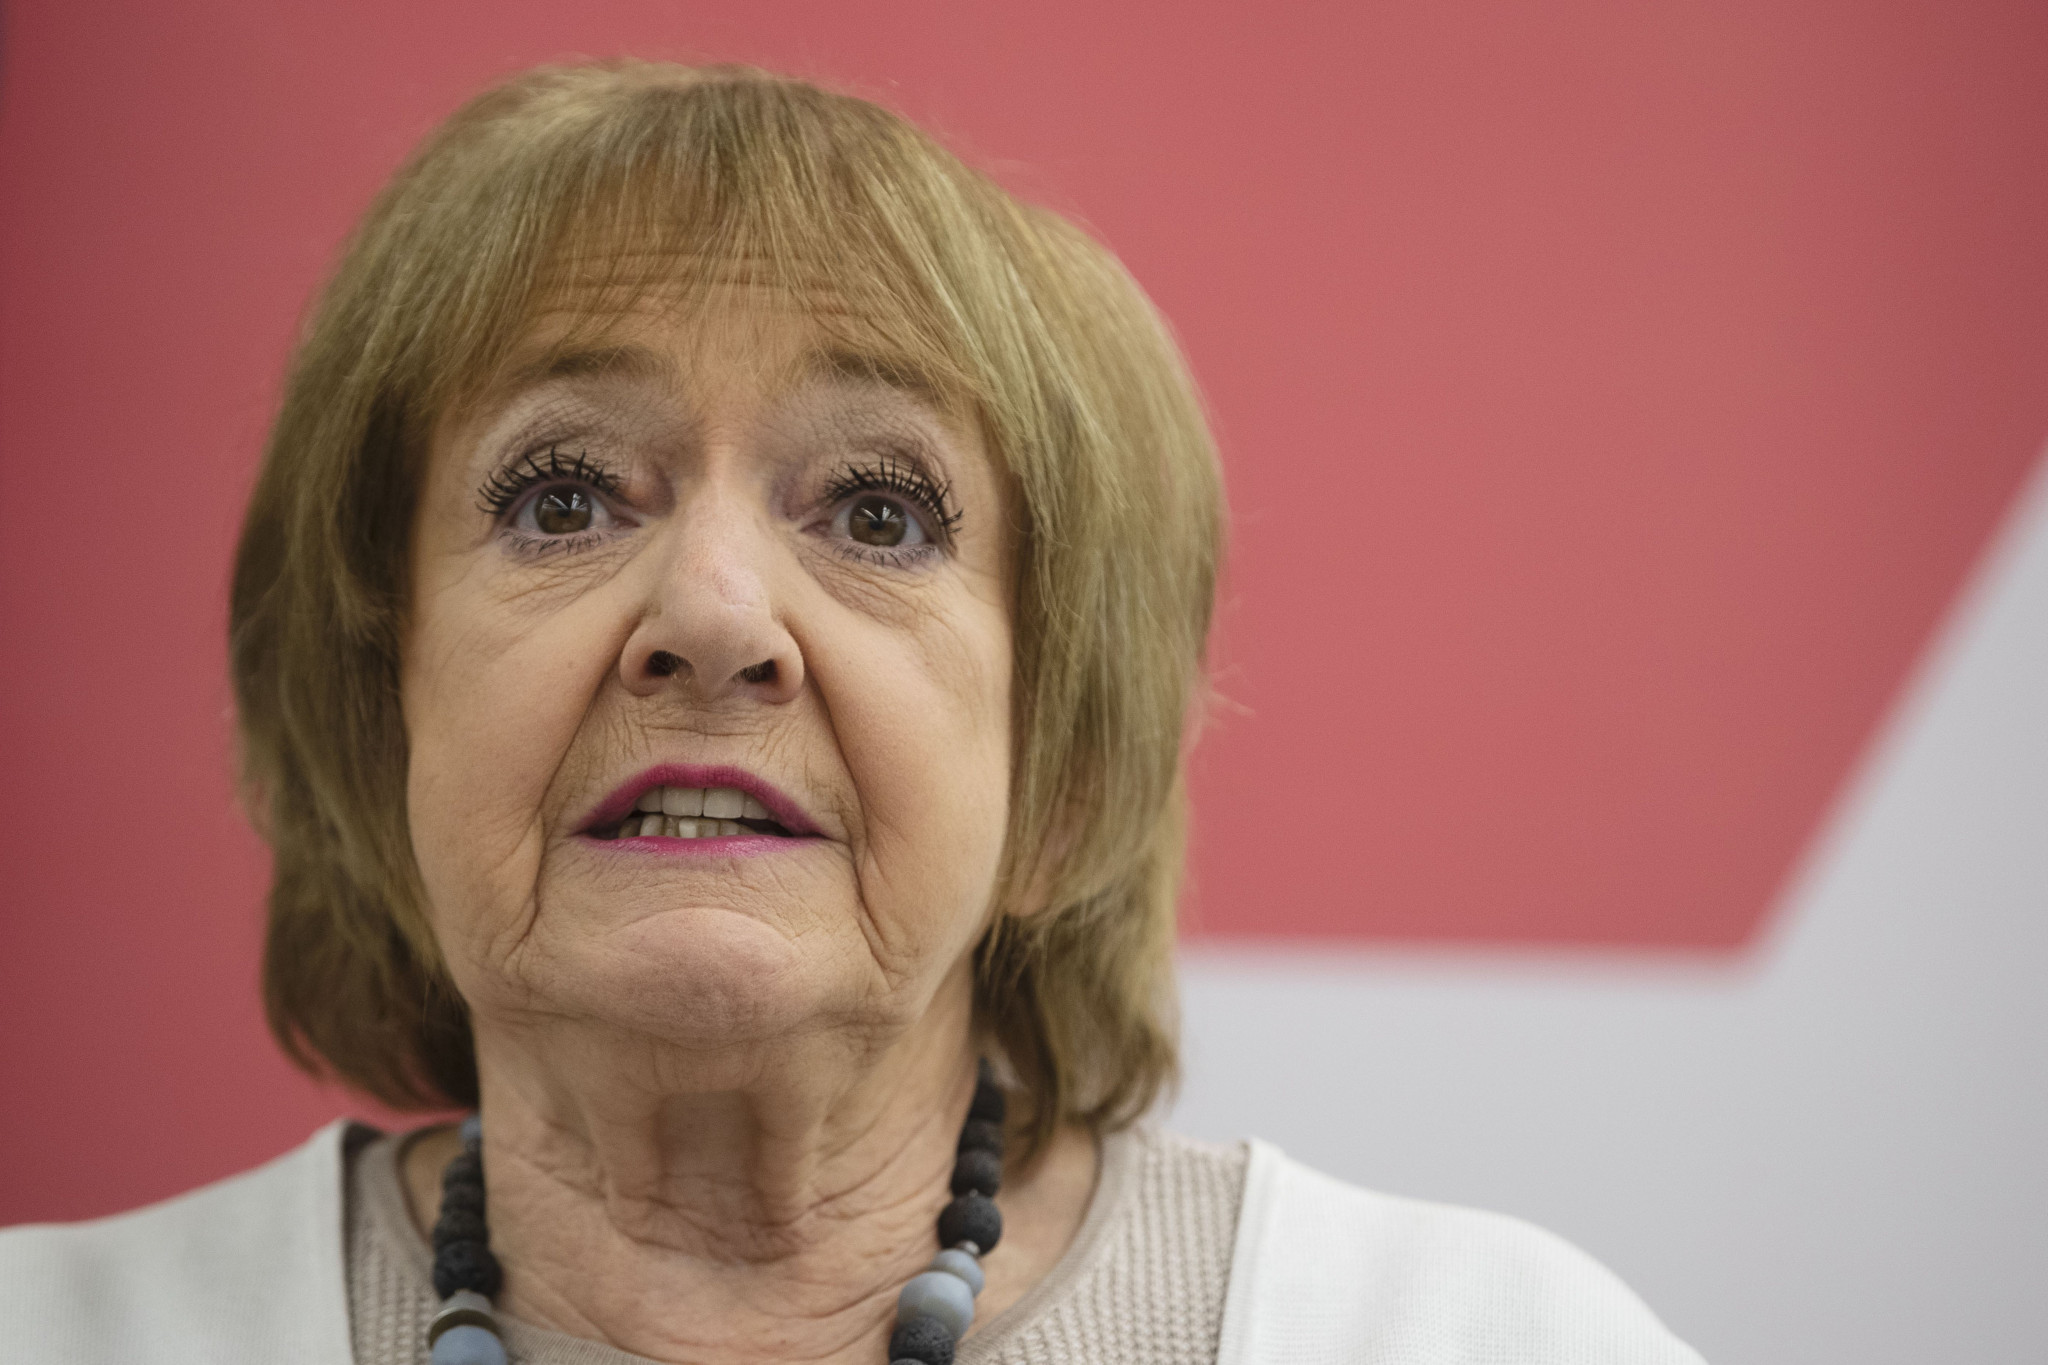 Labour's Dame Margaret Hodge was among those to urge the UK Government to sanction the individuals listed by Alexei Navalny ©Getty Images